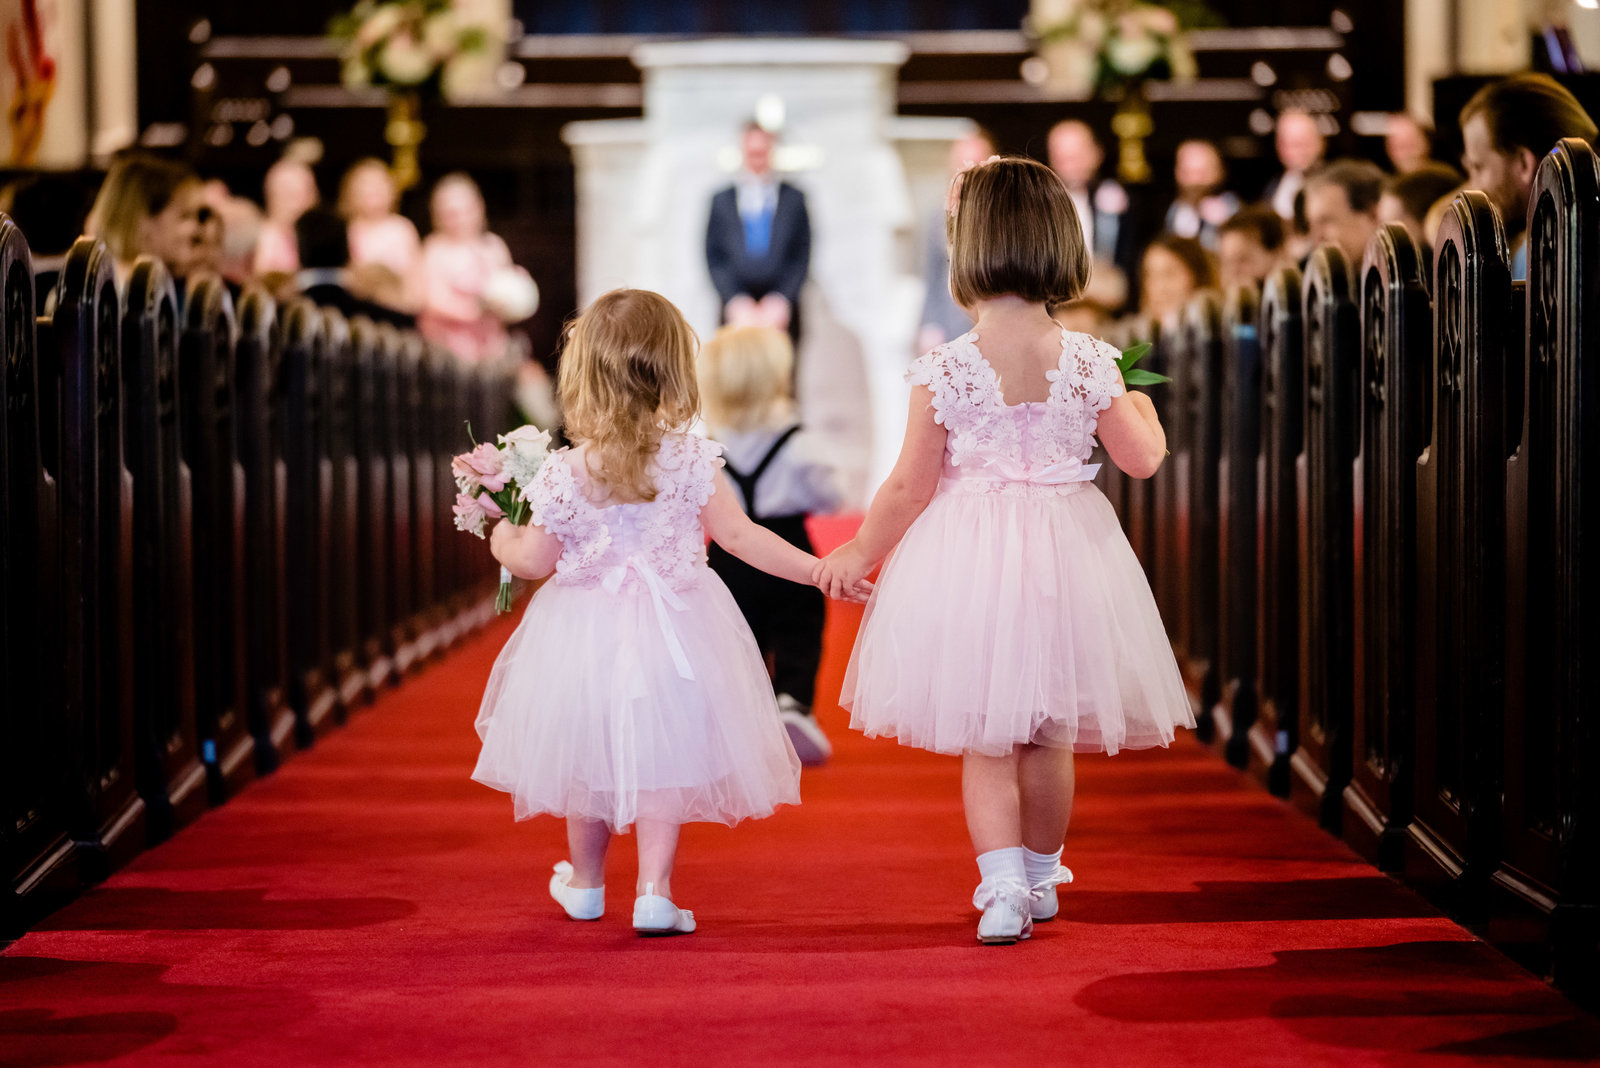 flower girls walking down aisle